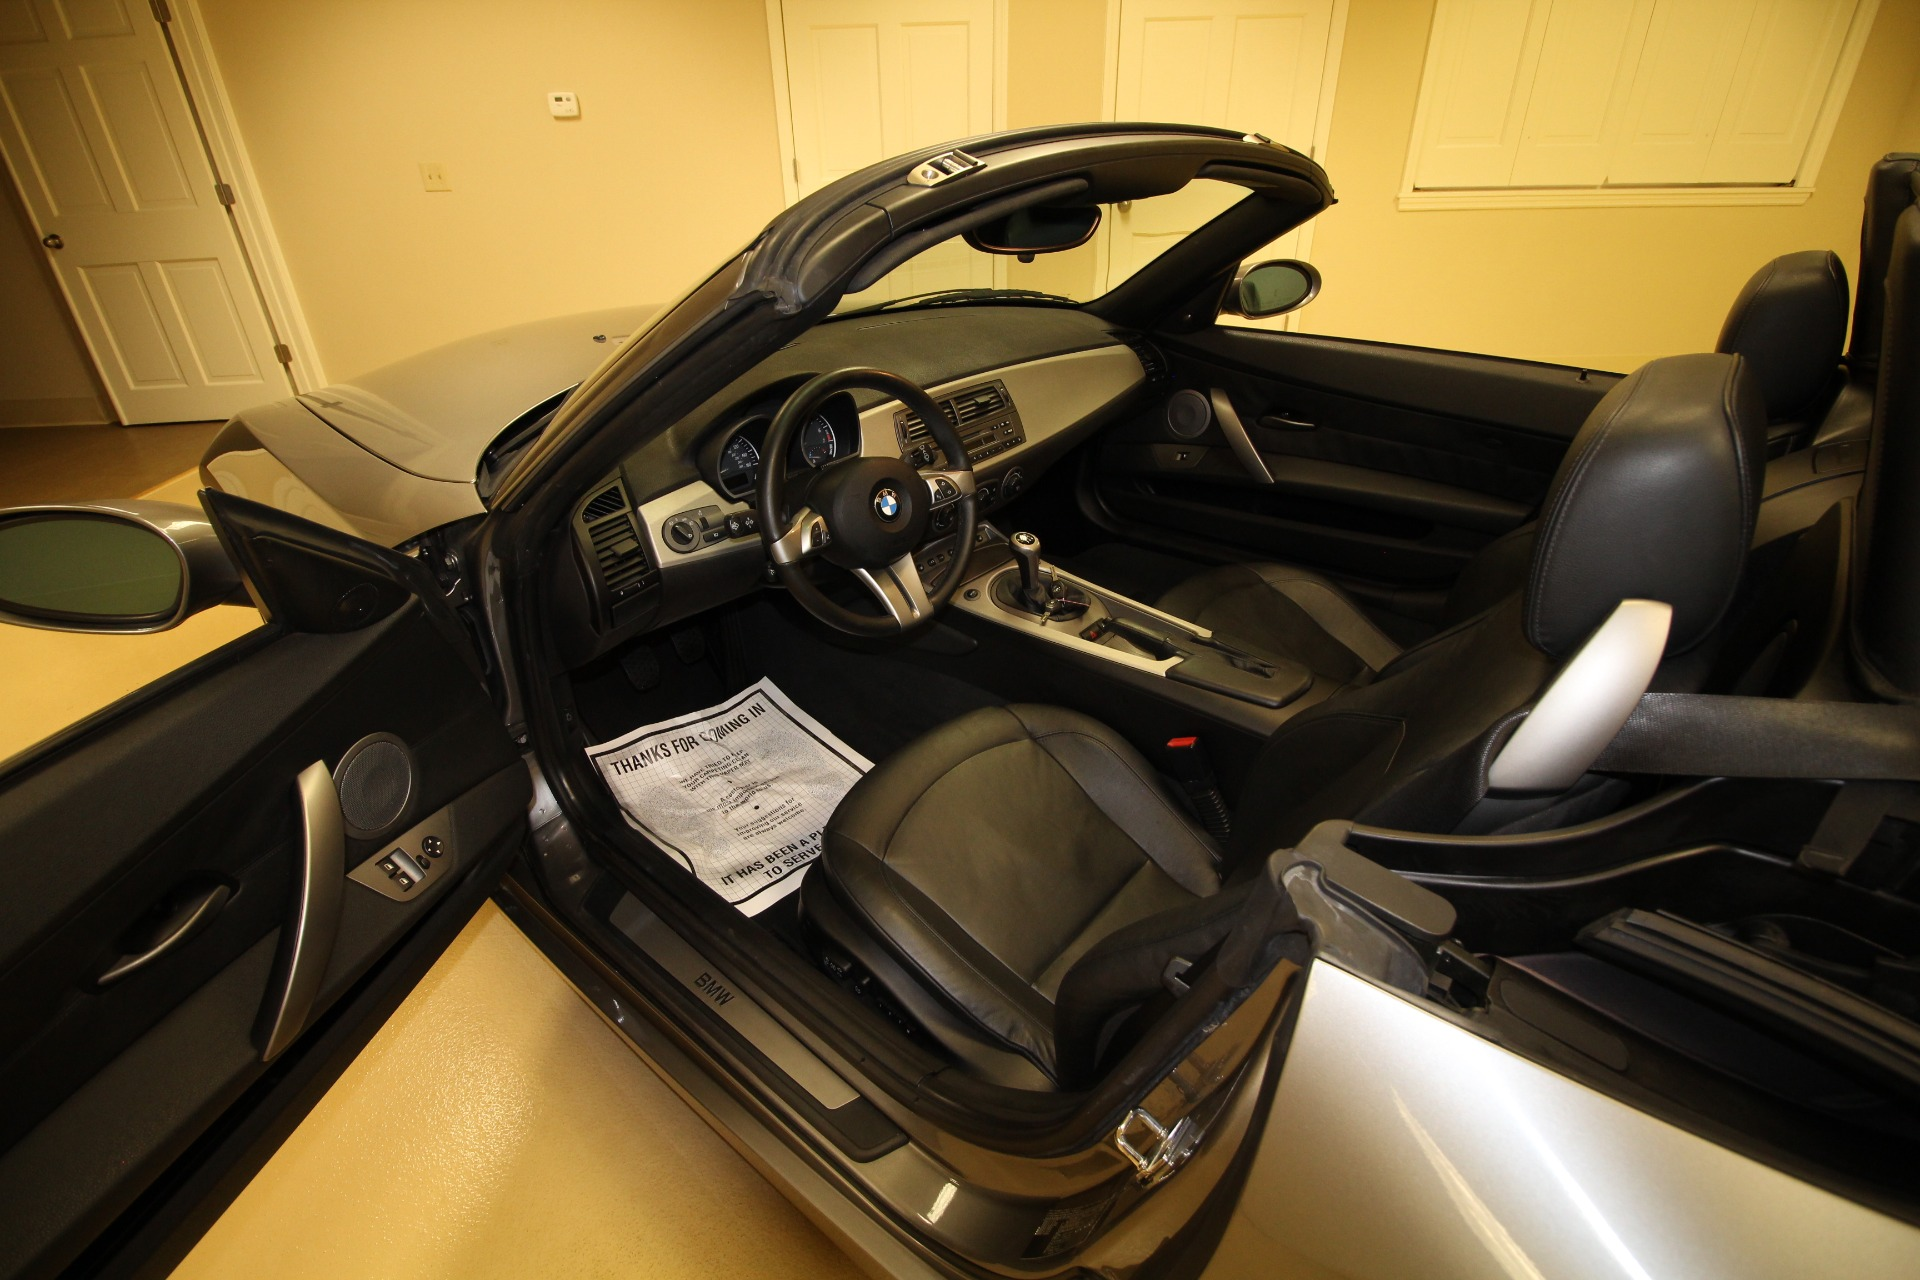 Used 2004 BMW Z4 3.0i RARE ONE OWNER RARE 6 SPEED MANUAL SUPER LOW MILES | Albany, NY